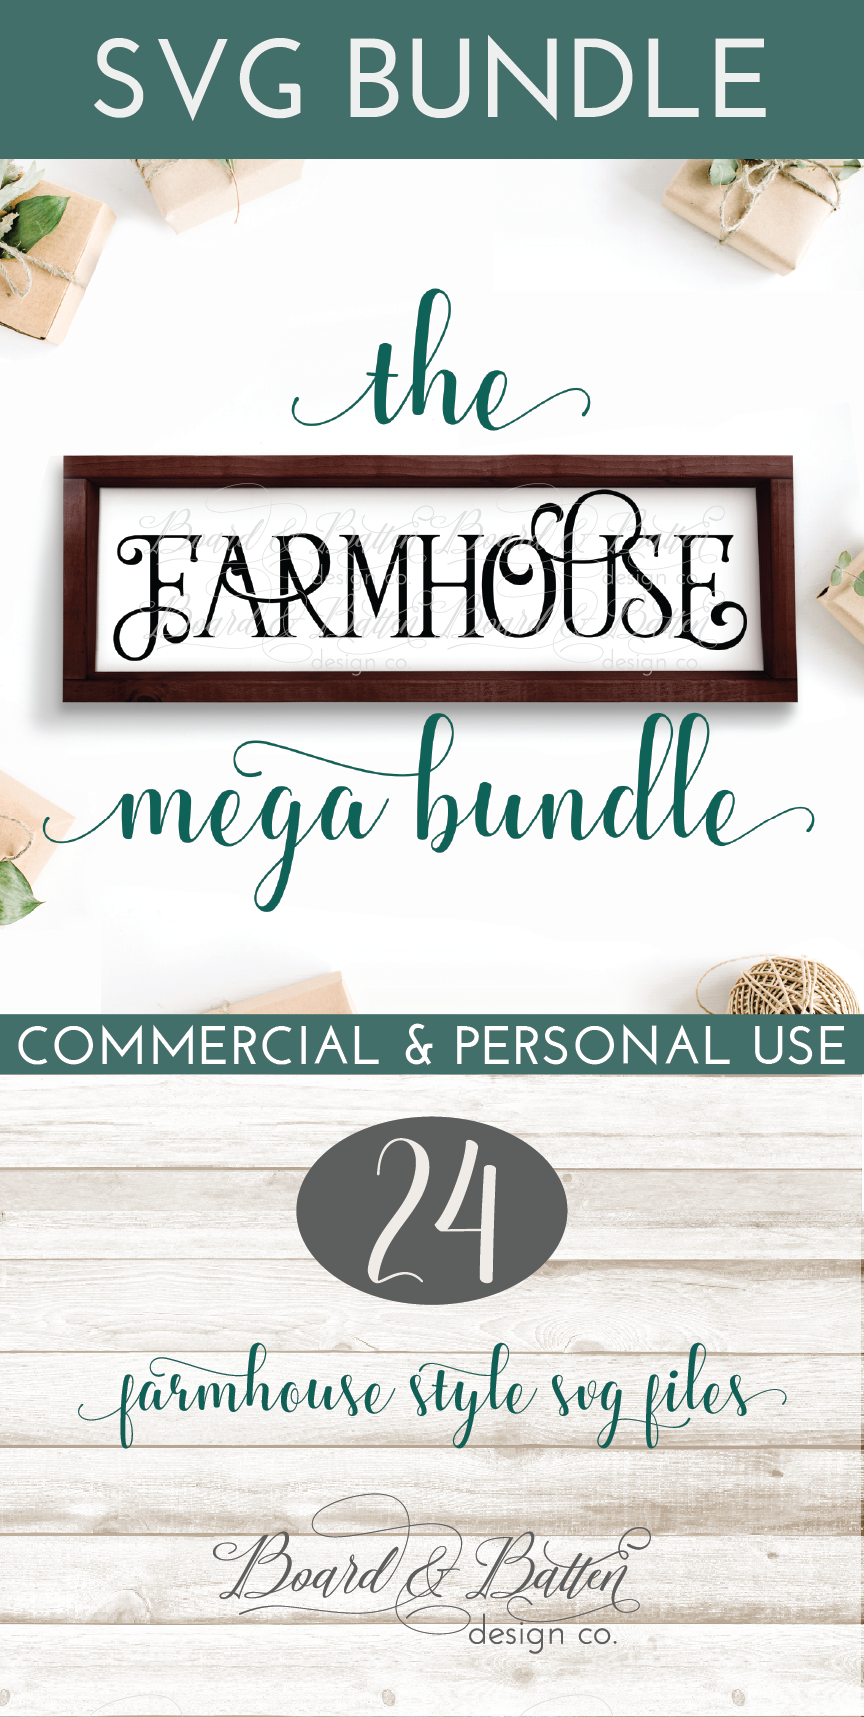 And you totally need this big mega farmhouse svg bundle this bundle has 24 farmhouse country ranch style svg files everything from est date signs to